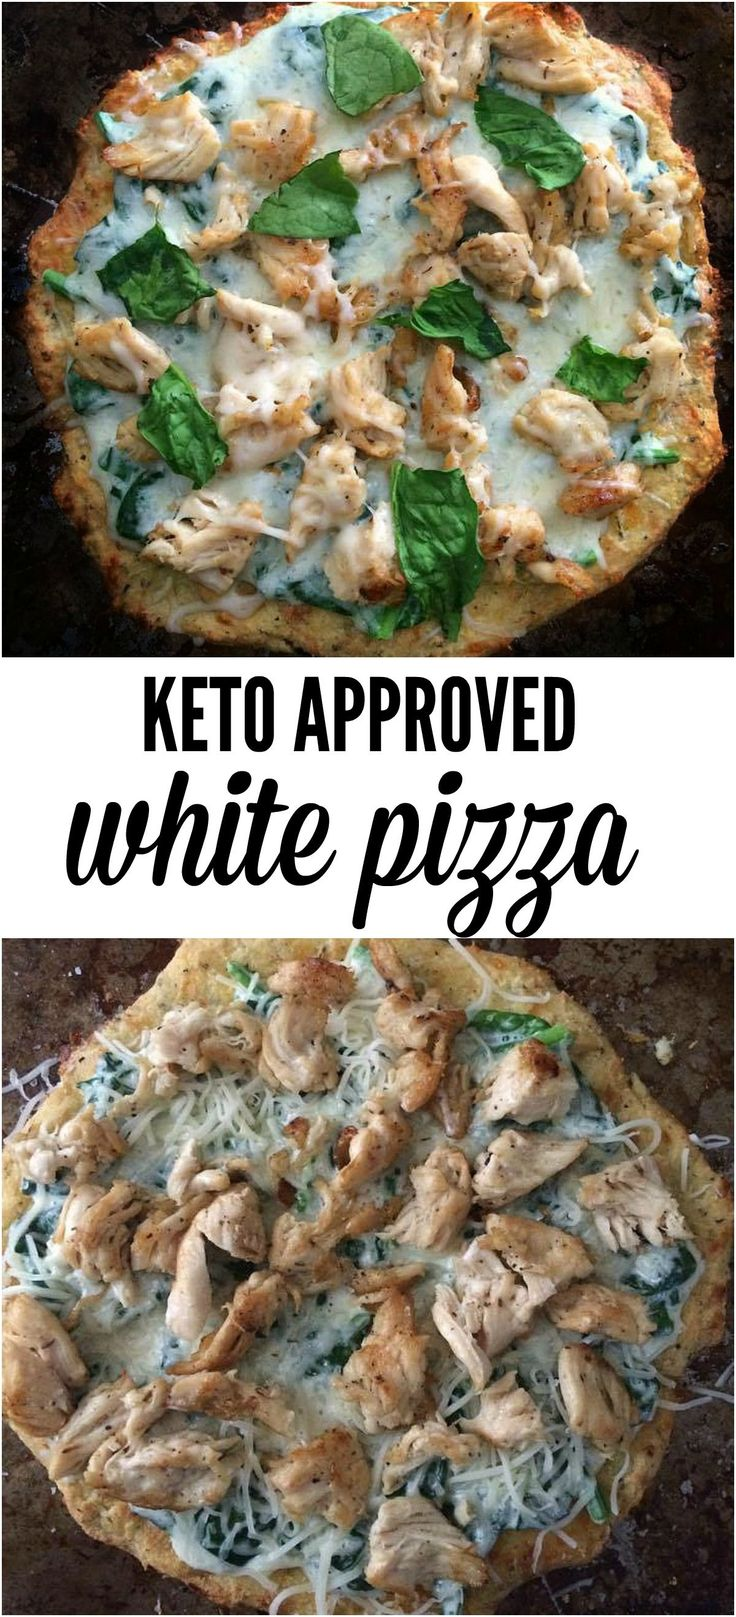 Are you following the keto way of eating? Then you HAVE to try this white keto p...